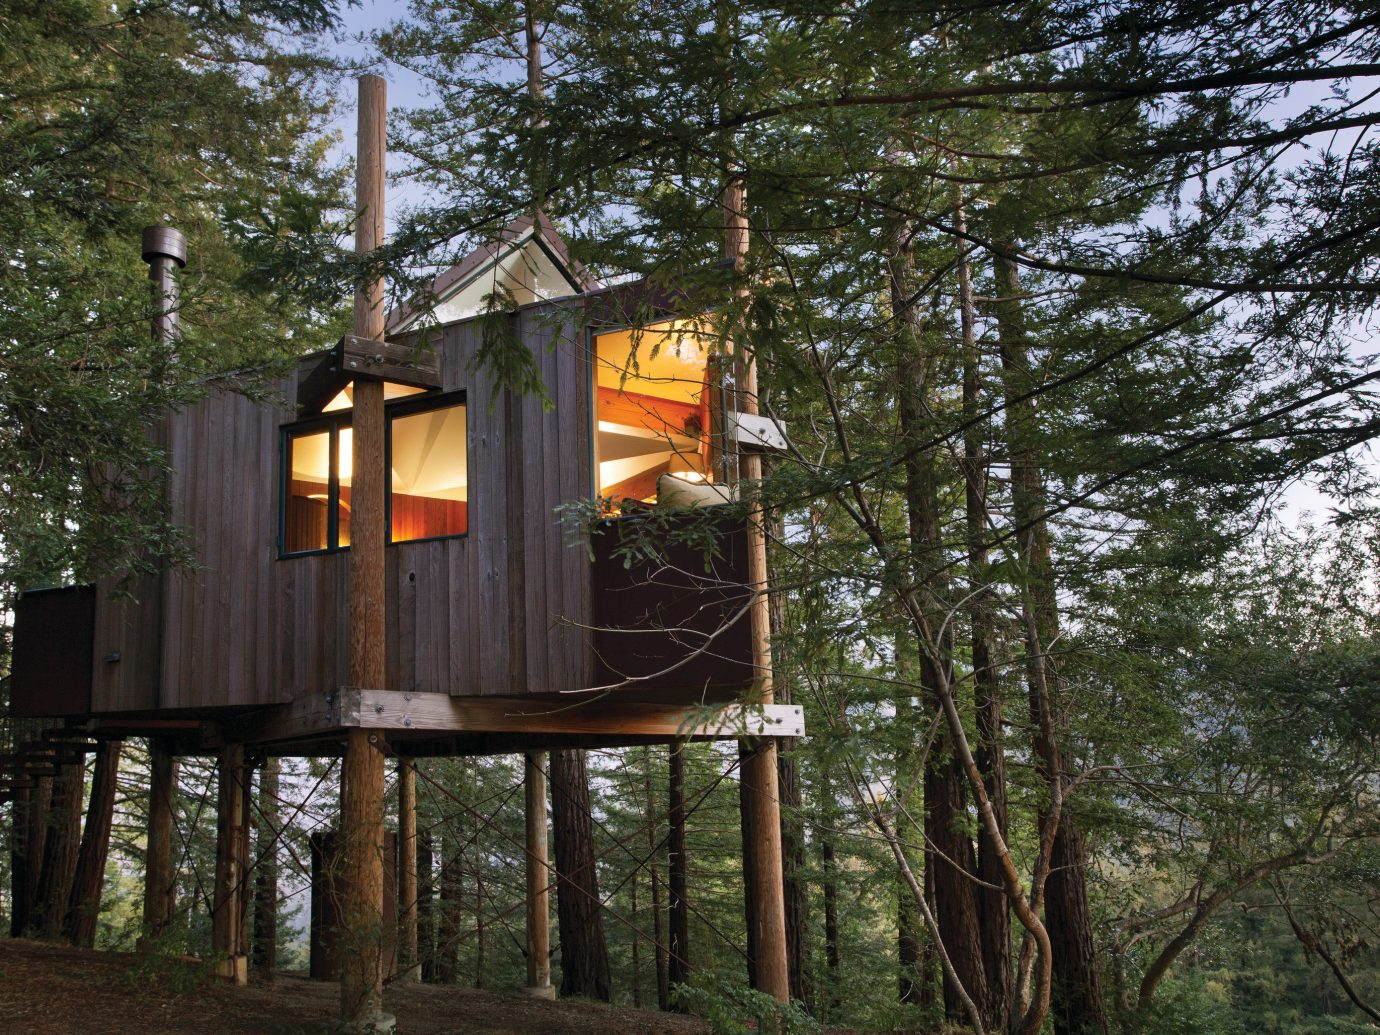 Hotels Trip Ideas tree outdoor house tree house log cabin home outdoor structure Forest wood wooded several